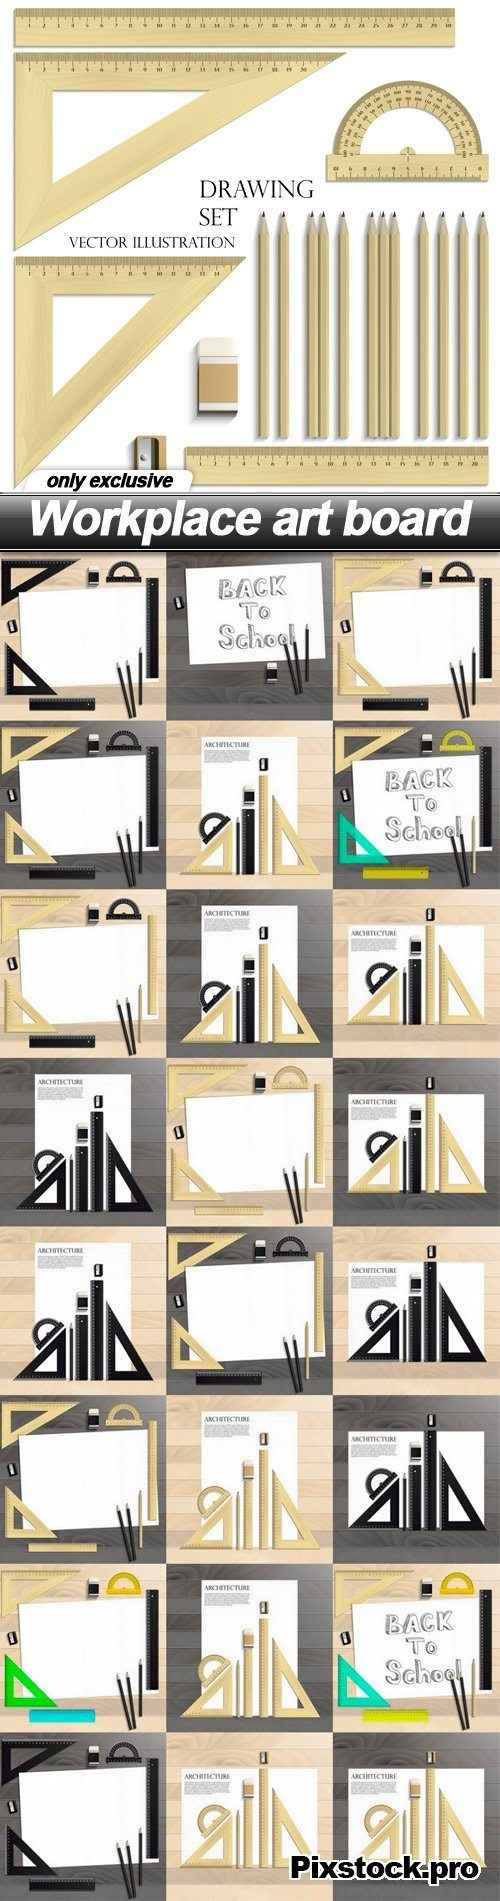 Workplace art board – 25 EPS